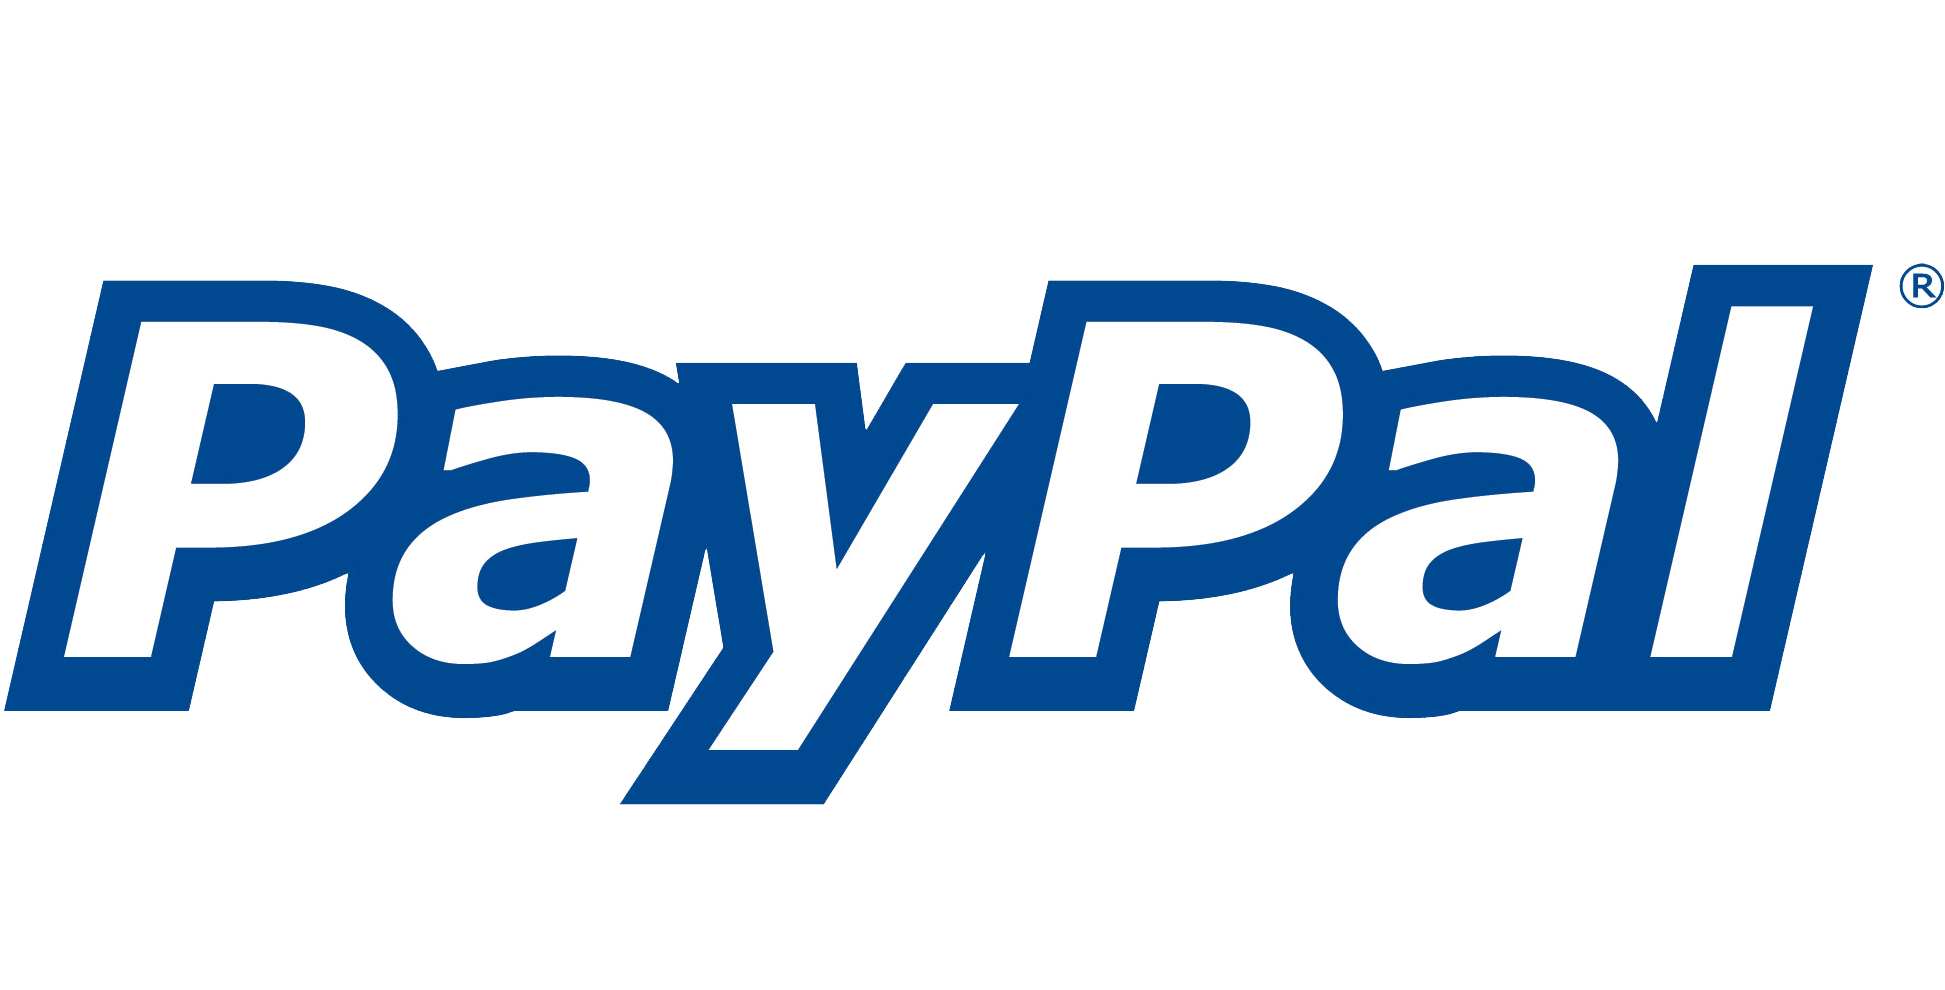 Buffdaddys Paypal  Team